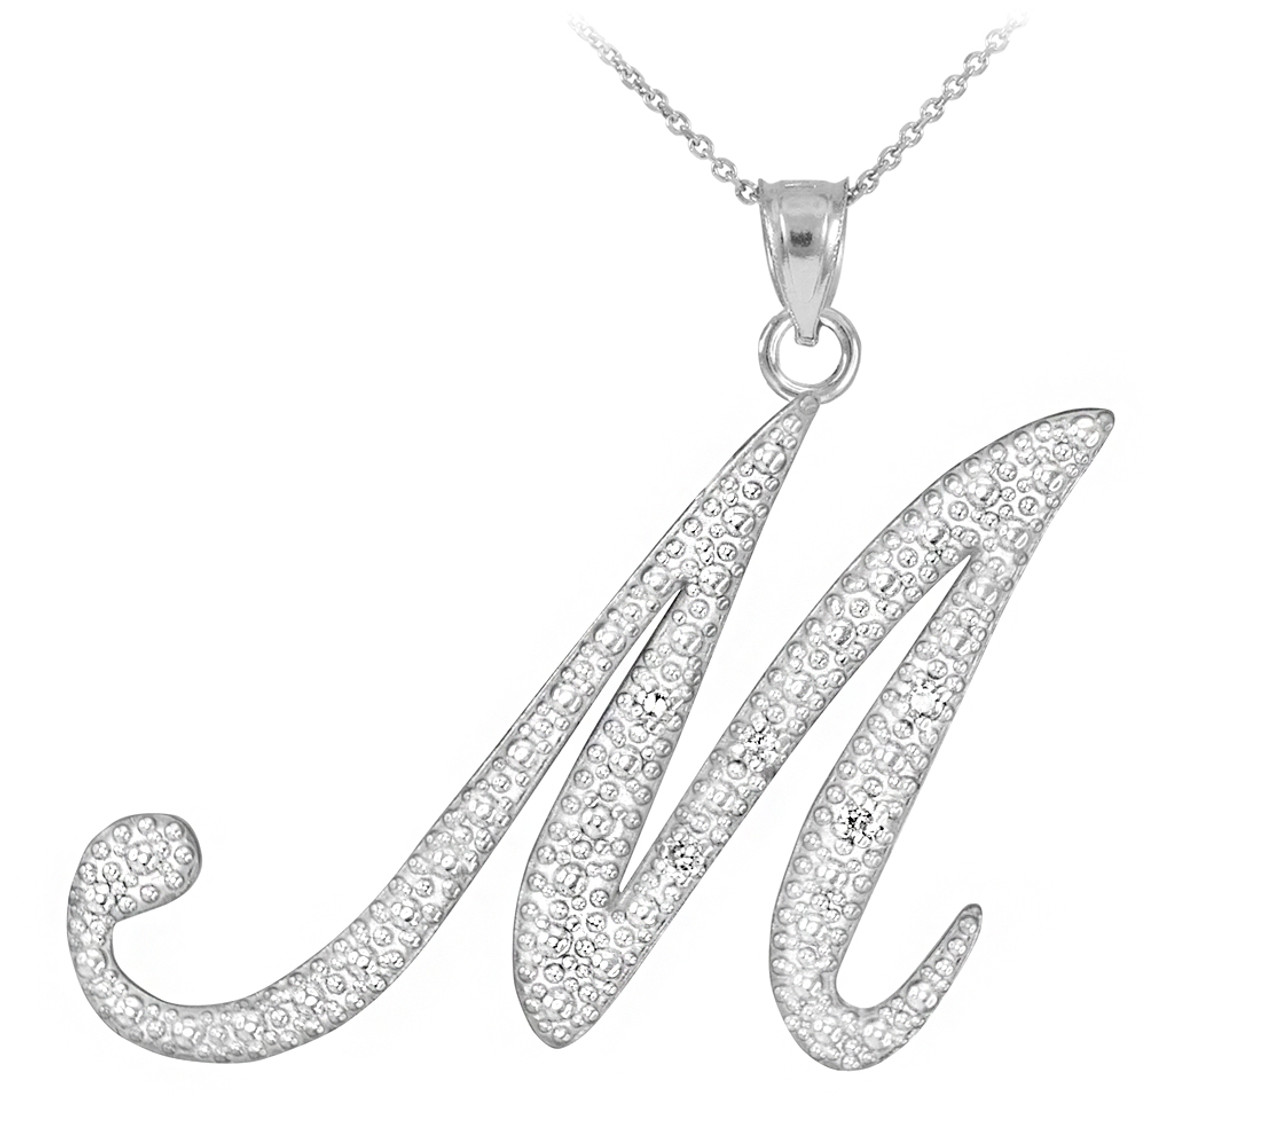 White gold letter script m diamond initial pendant necklace 14k white gold letter script m diamond initial pendant necklace mozeypictures Image collections